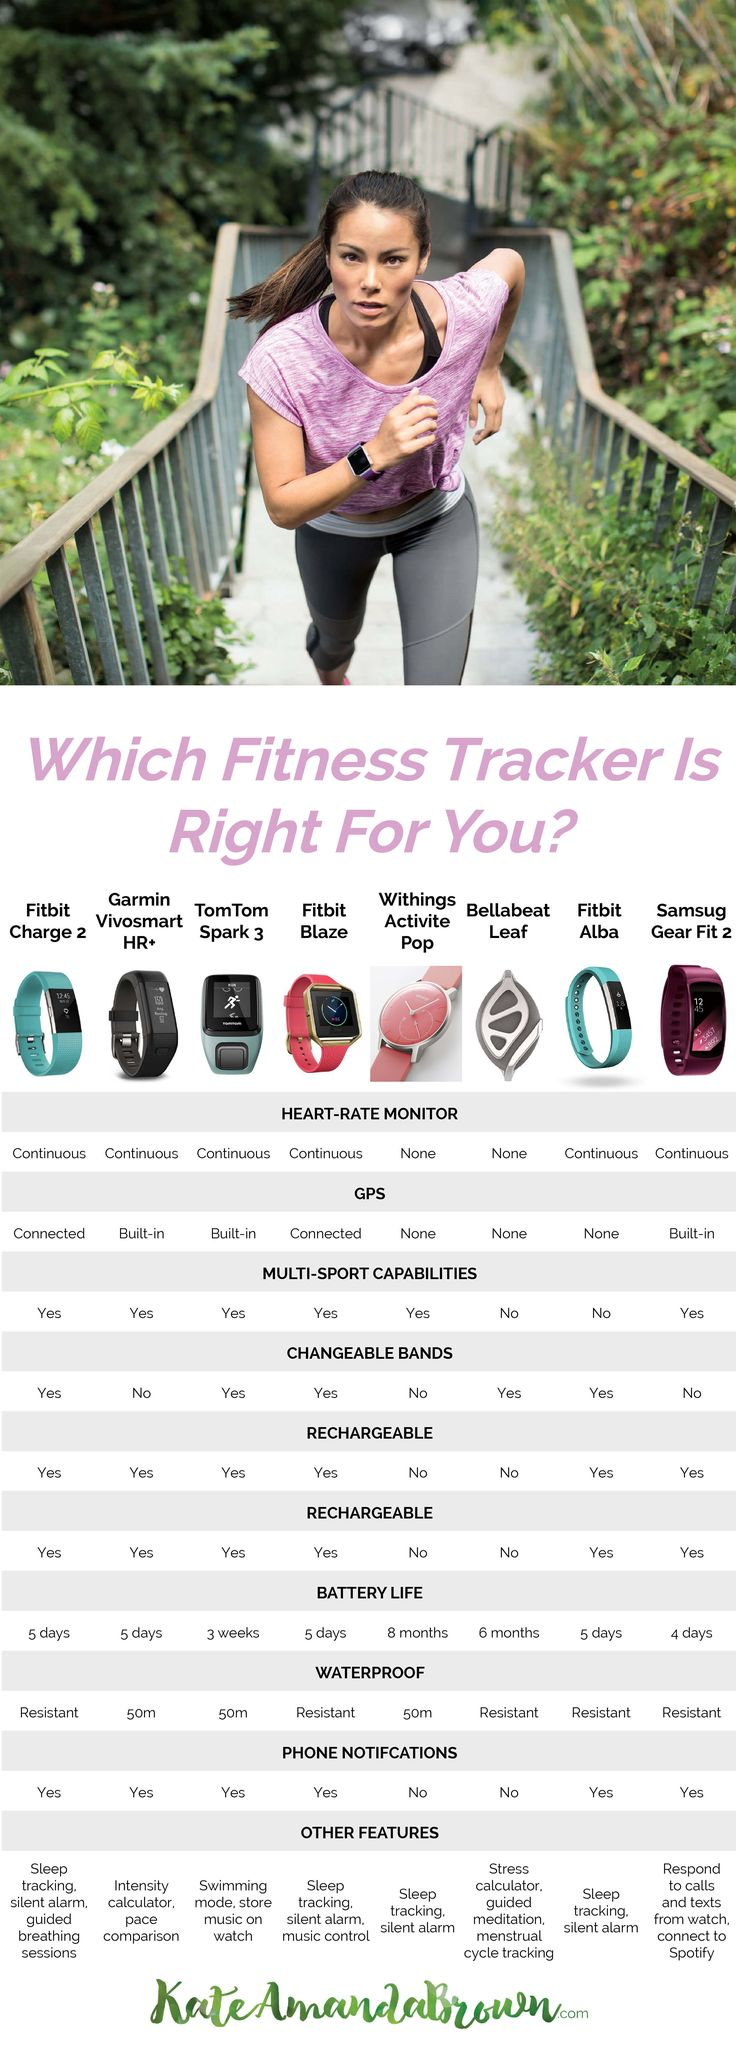 best fitness trackers for women, top fitness trackers for women, best fitness trackers, fitness tracker comparison, compare fitness trackers, which fitness tracker is best for you, how to find the best fitness tracker, what is the best fitness tracker, fitness tracker review, fitness watch review, fitness watch comparison, best fitness watches for women, best fitness watches, top fitness watches, top fitness watches for women, fitness watch infographic, comparison table fitness tracker